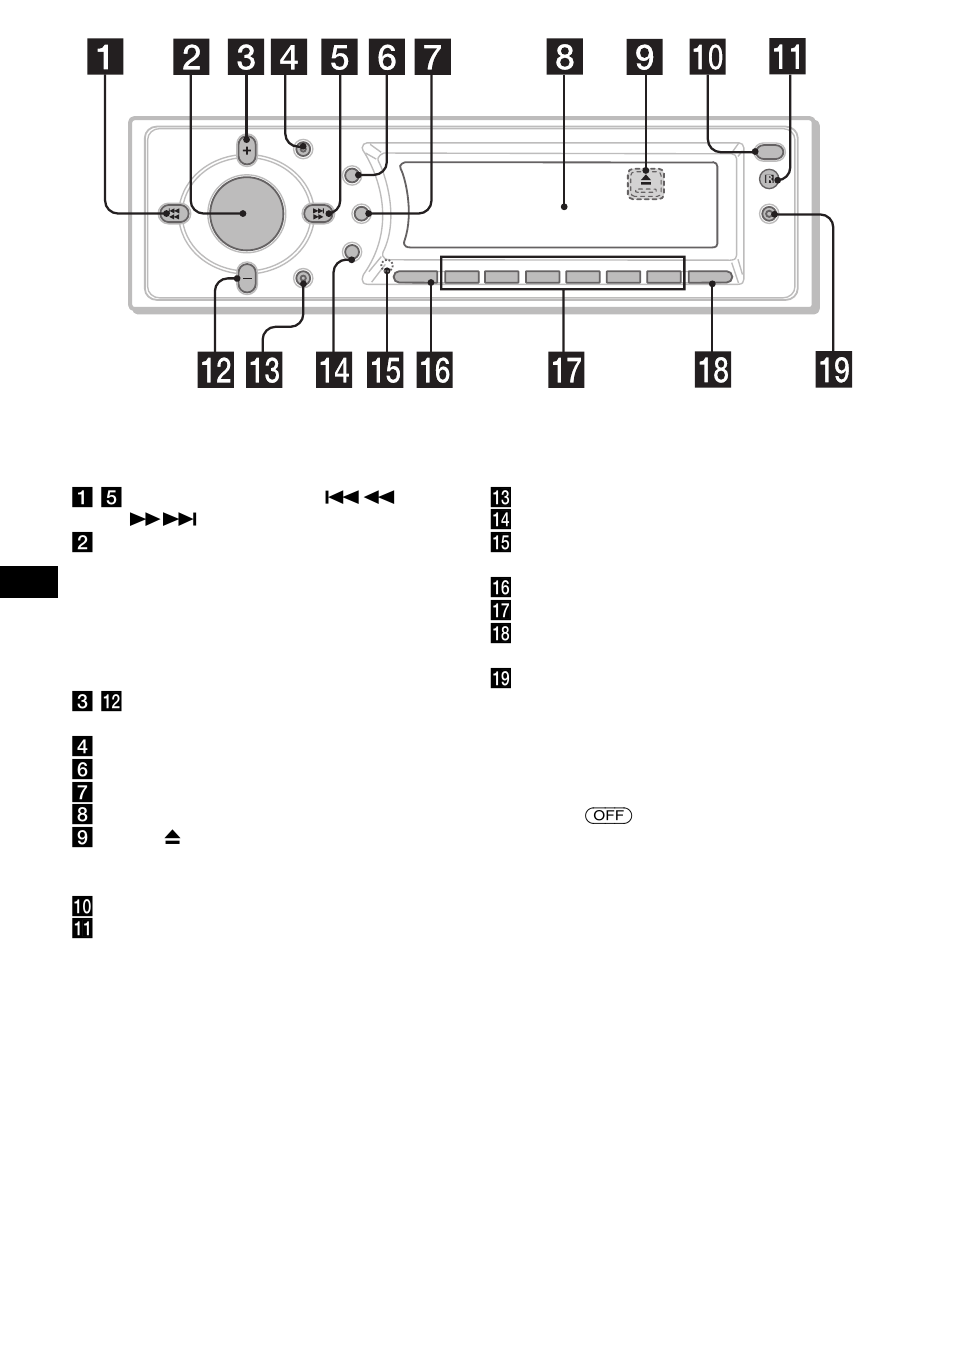 Sony CDX-FW700 User Manual | Page 34 / 60